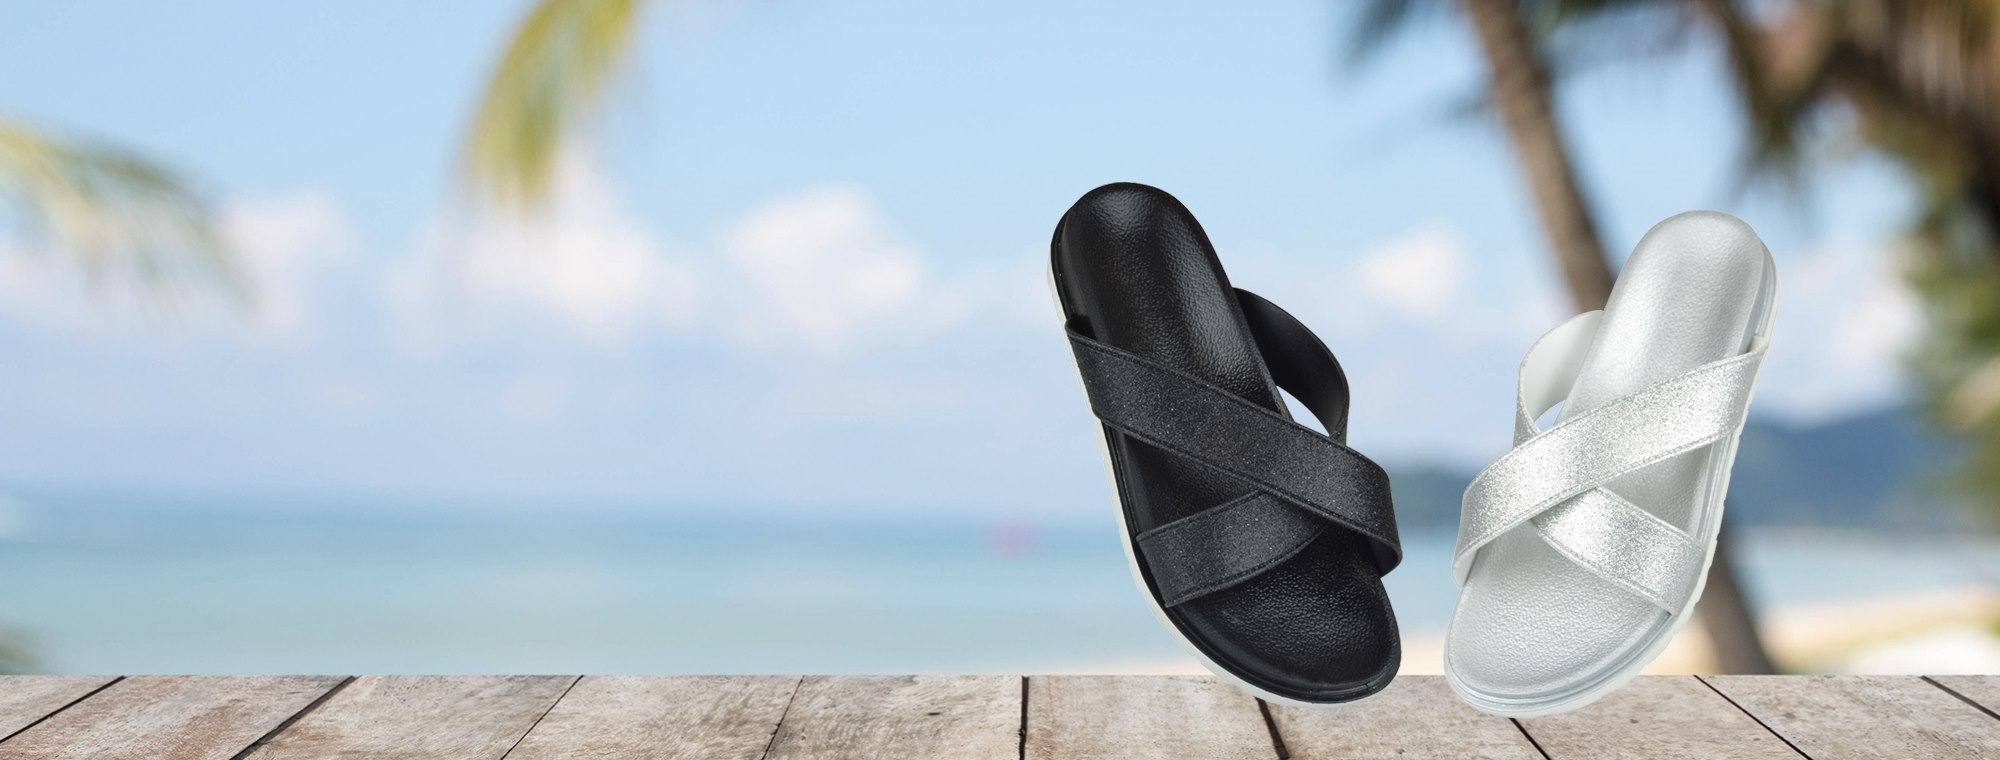 KSB Summer Sandals Flip Flops Footwear 2019